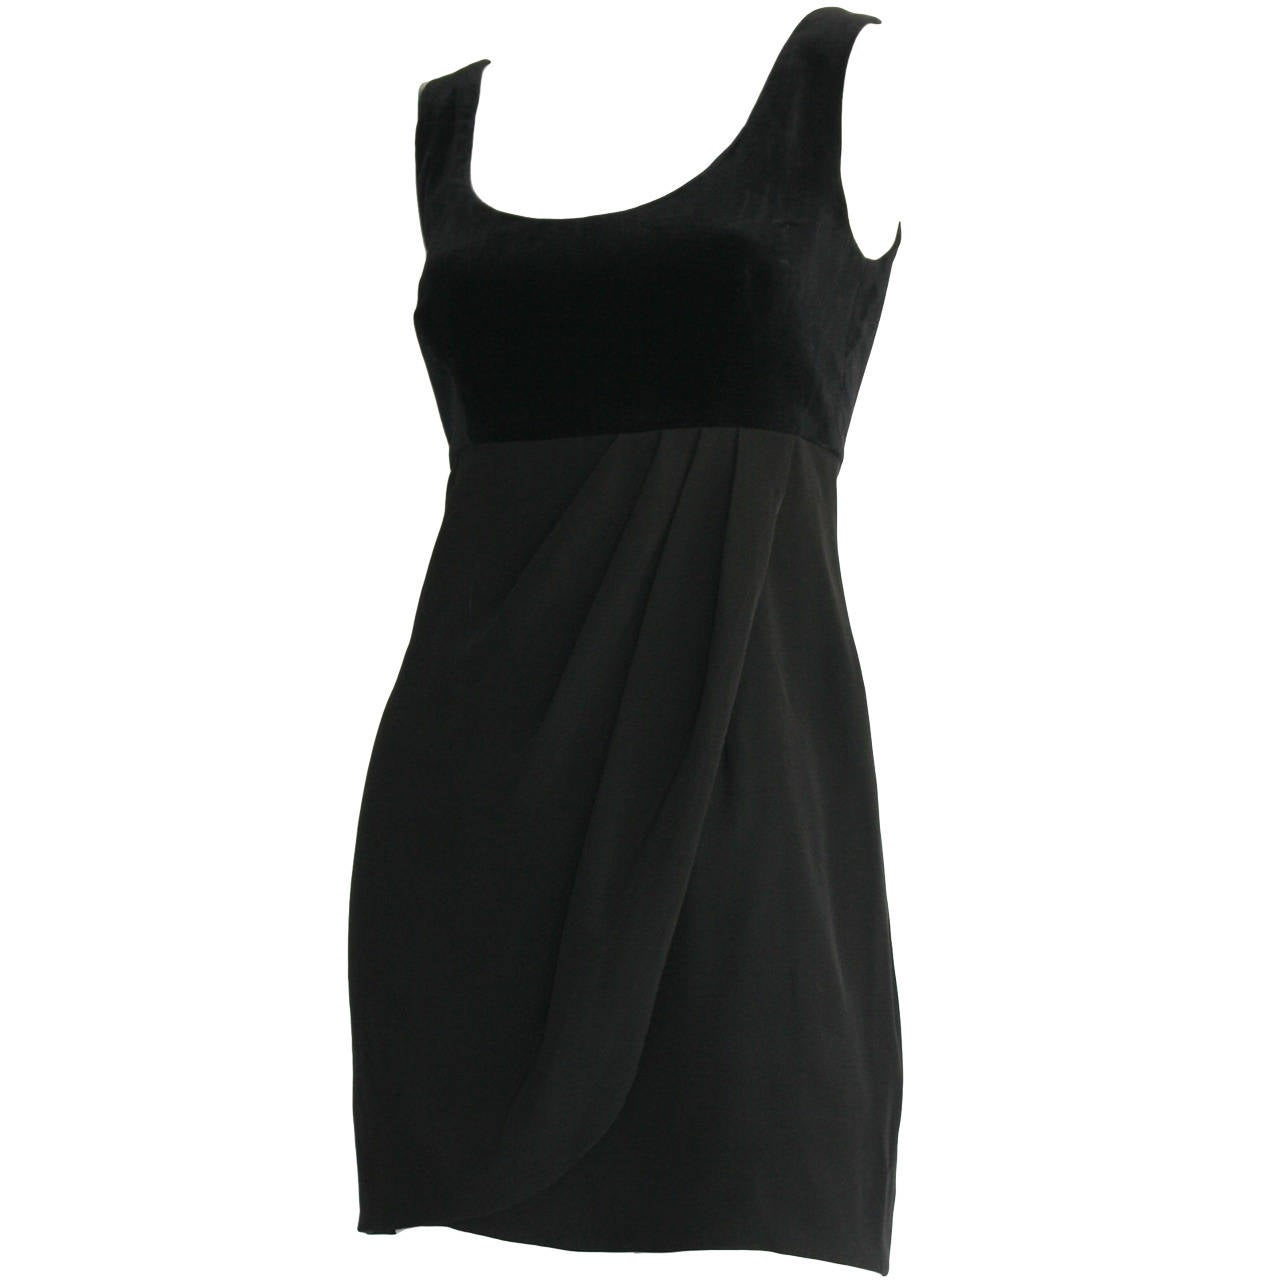 Vintage Guy Laroche Perfect Little Black Dress LBD For Sale at 1stdibs